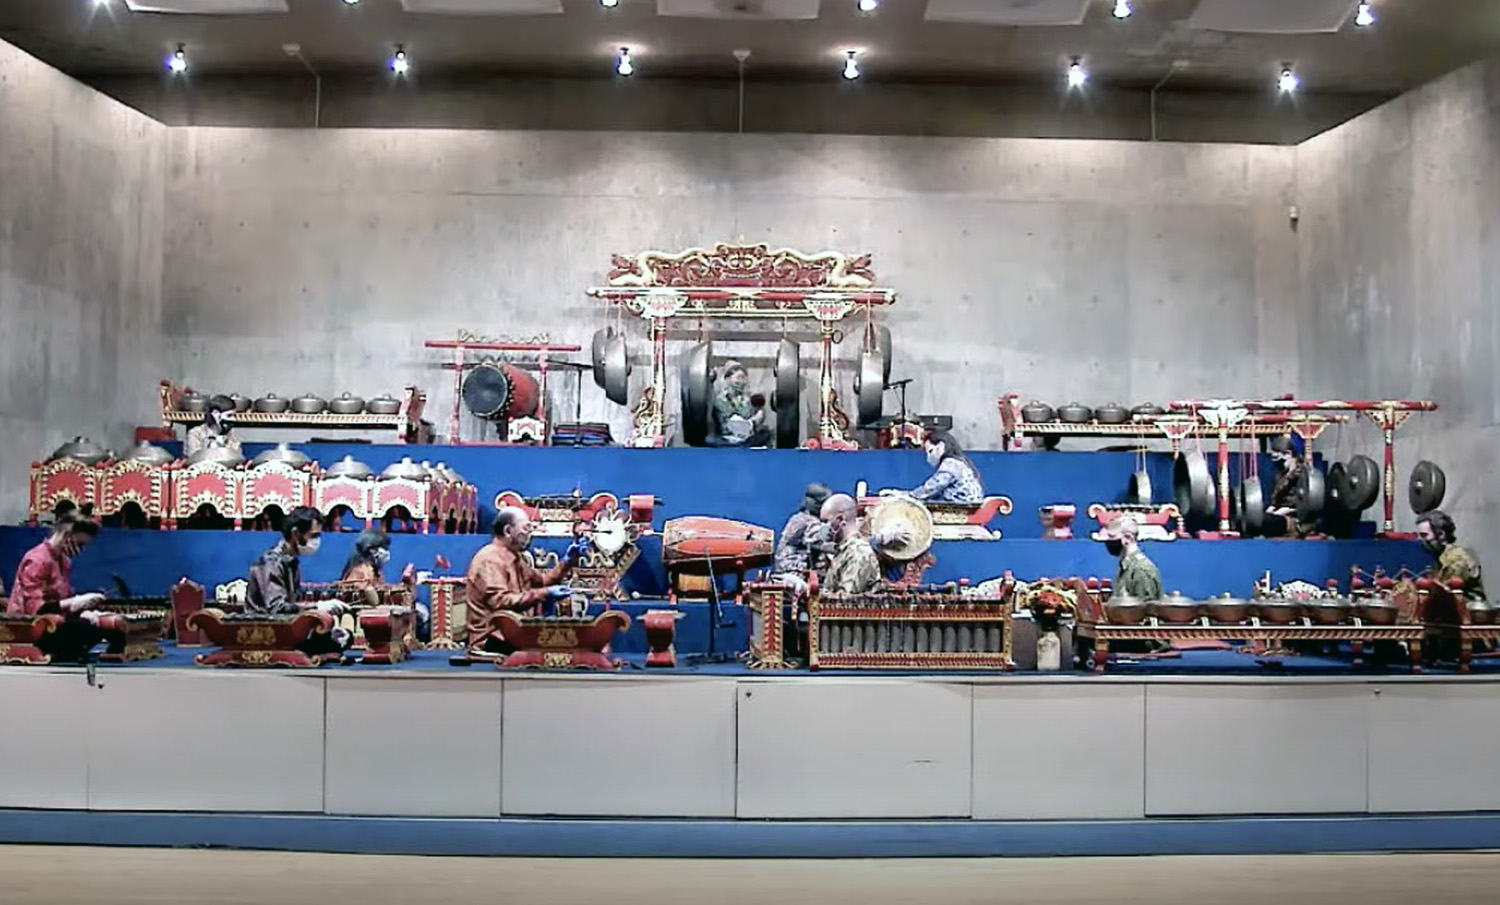 On Nov. 23, the Wesleyan Gamelan Ensemble performed classical music of Central Java, a number of repertoires from two gamelan styles, Surakarta and Yogyakarta.